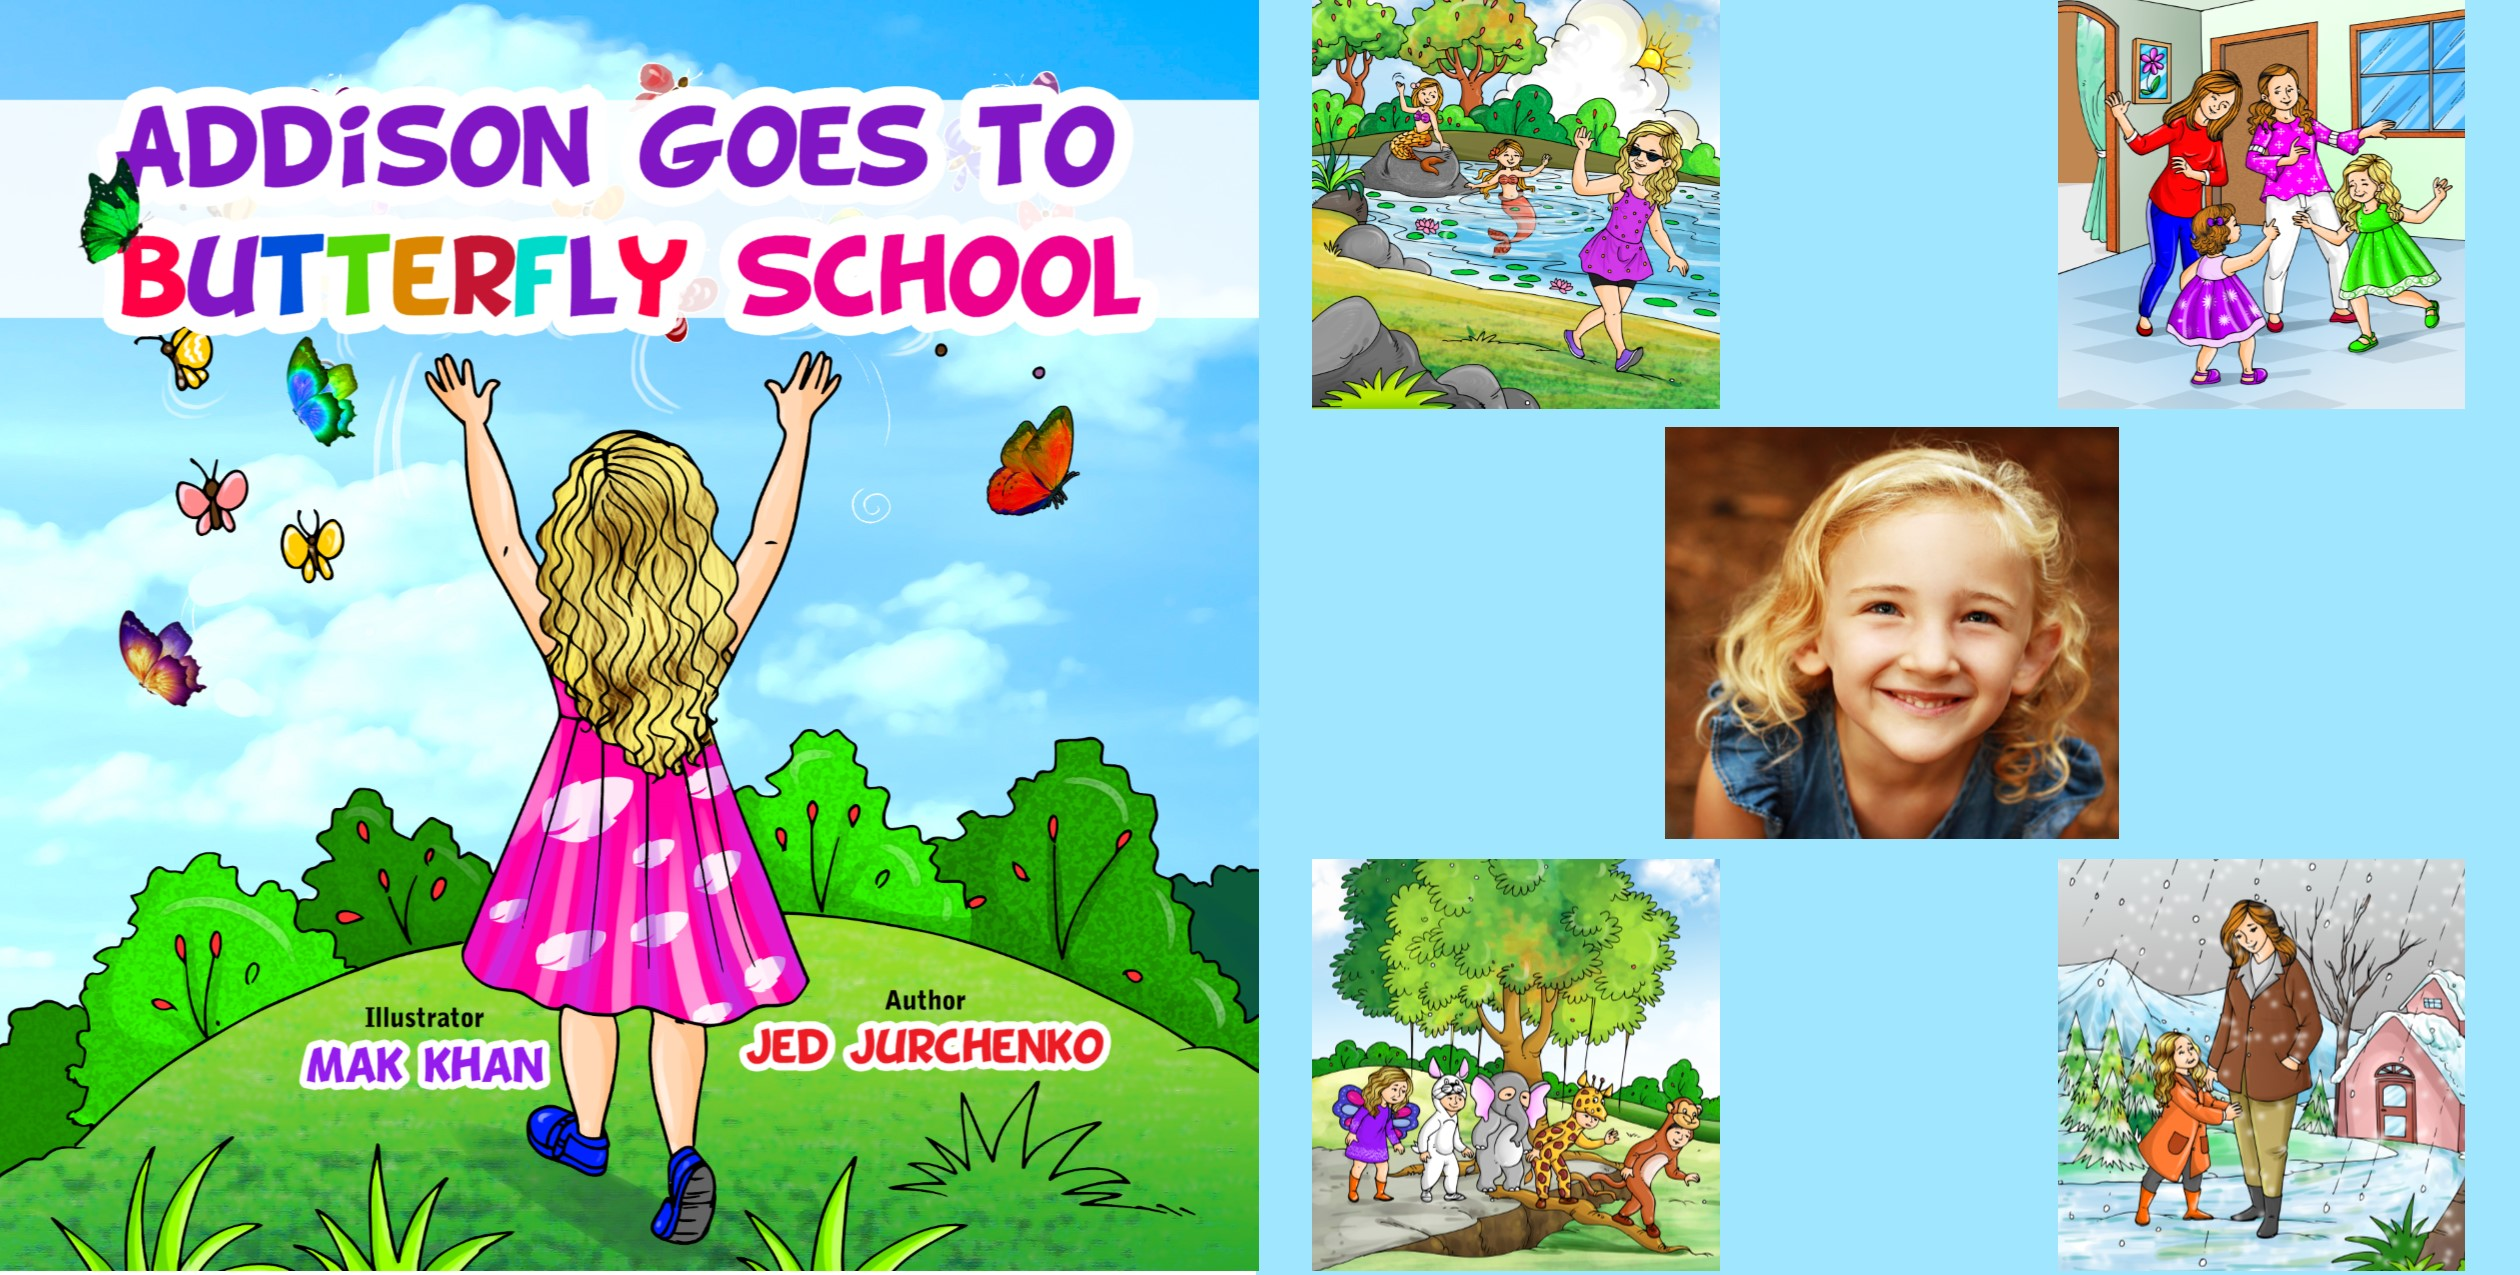 Addison Goes to Butterfly School